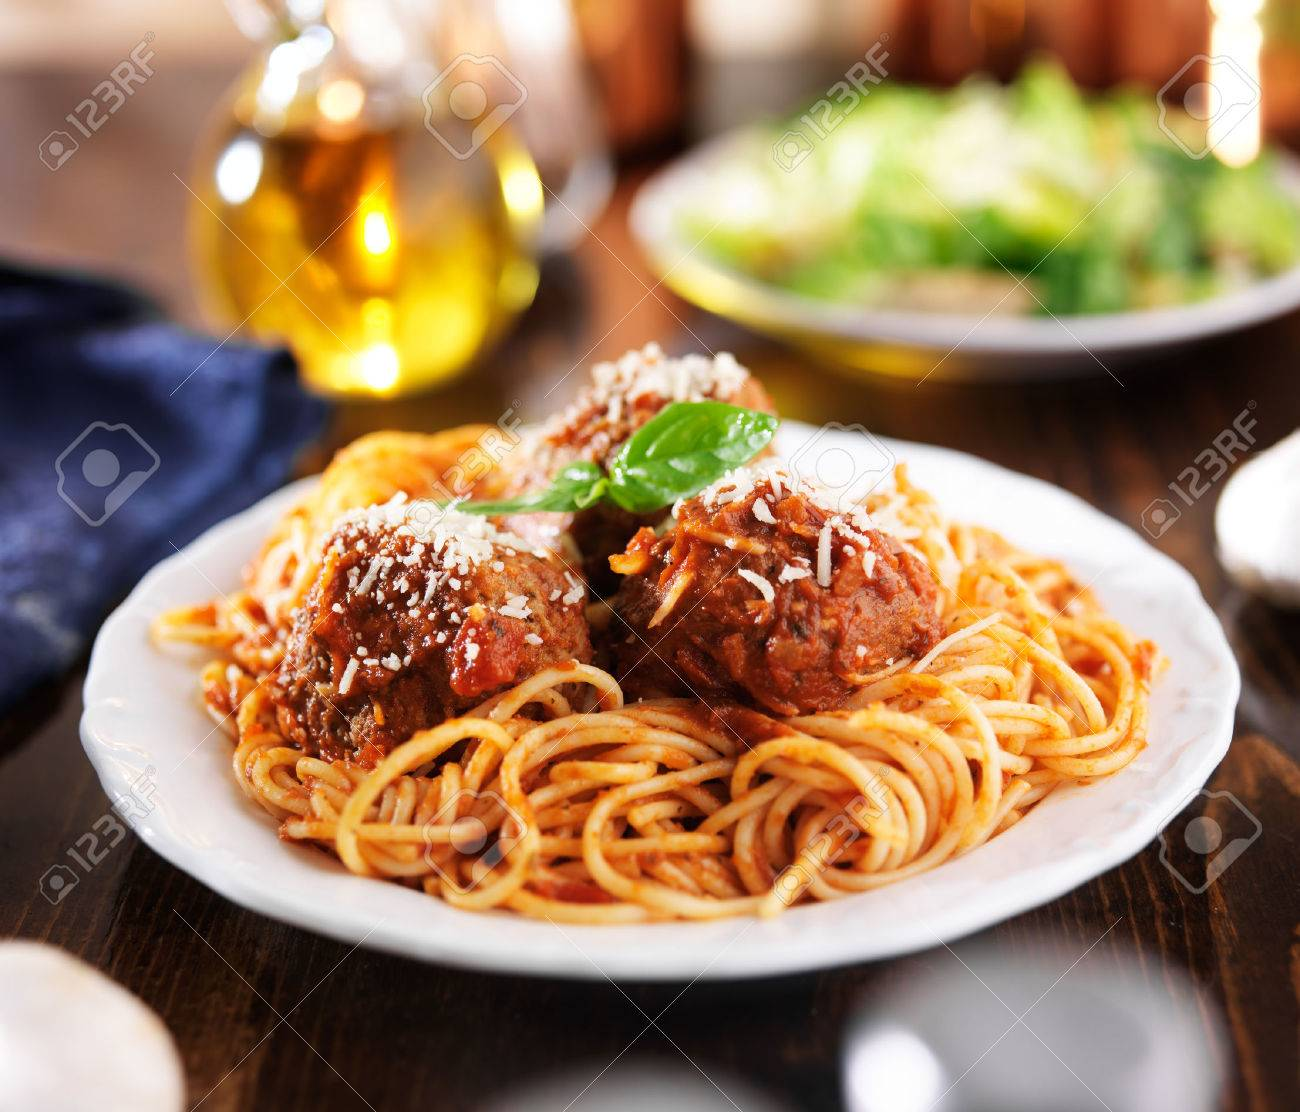 Italian Food   Spaghetti And Meatballs At Dinner Table Stock Photo    31616004